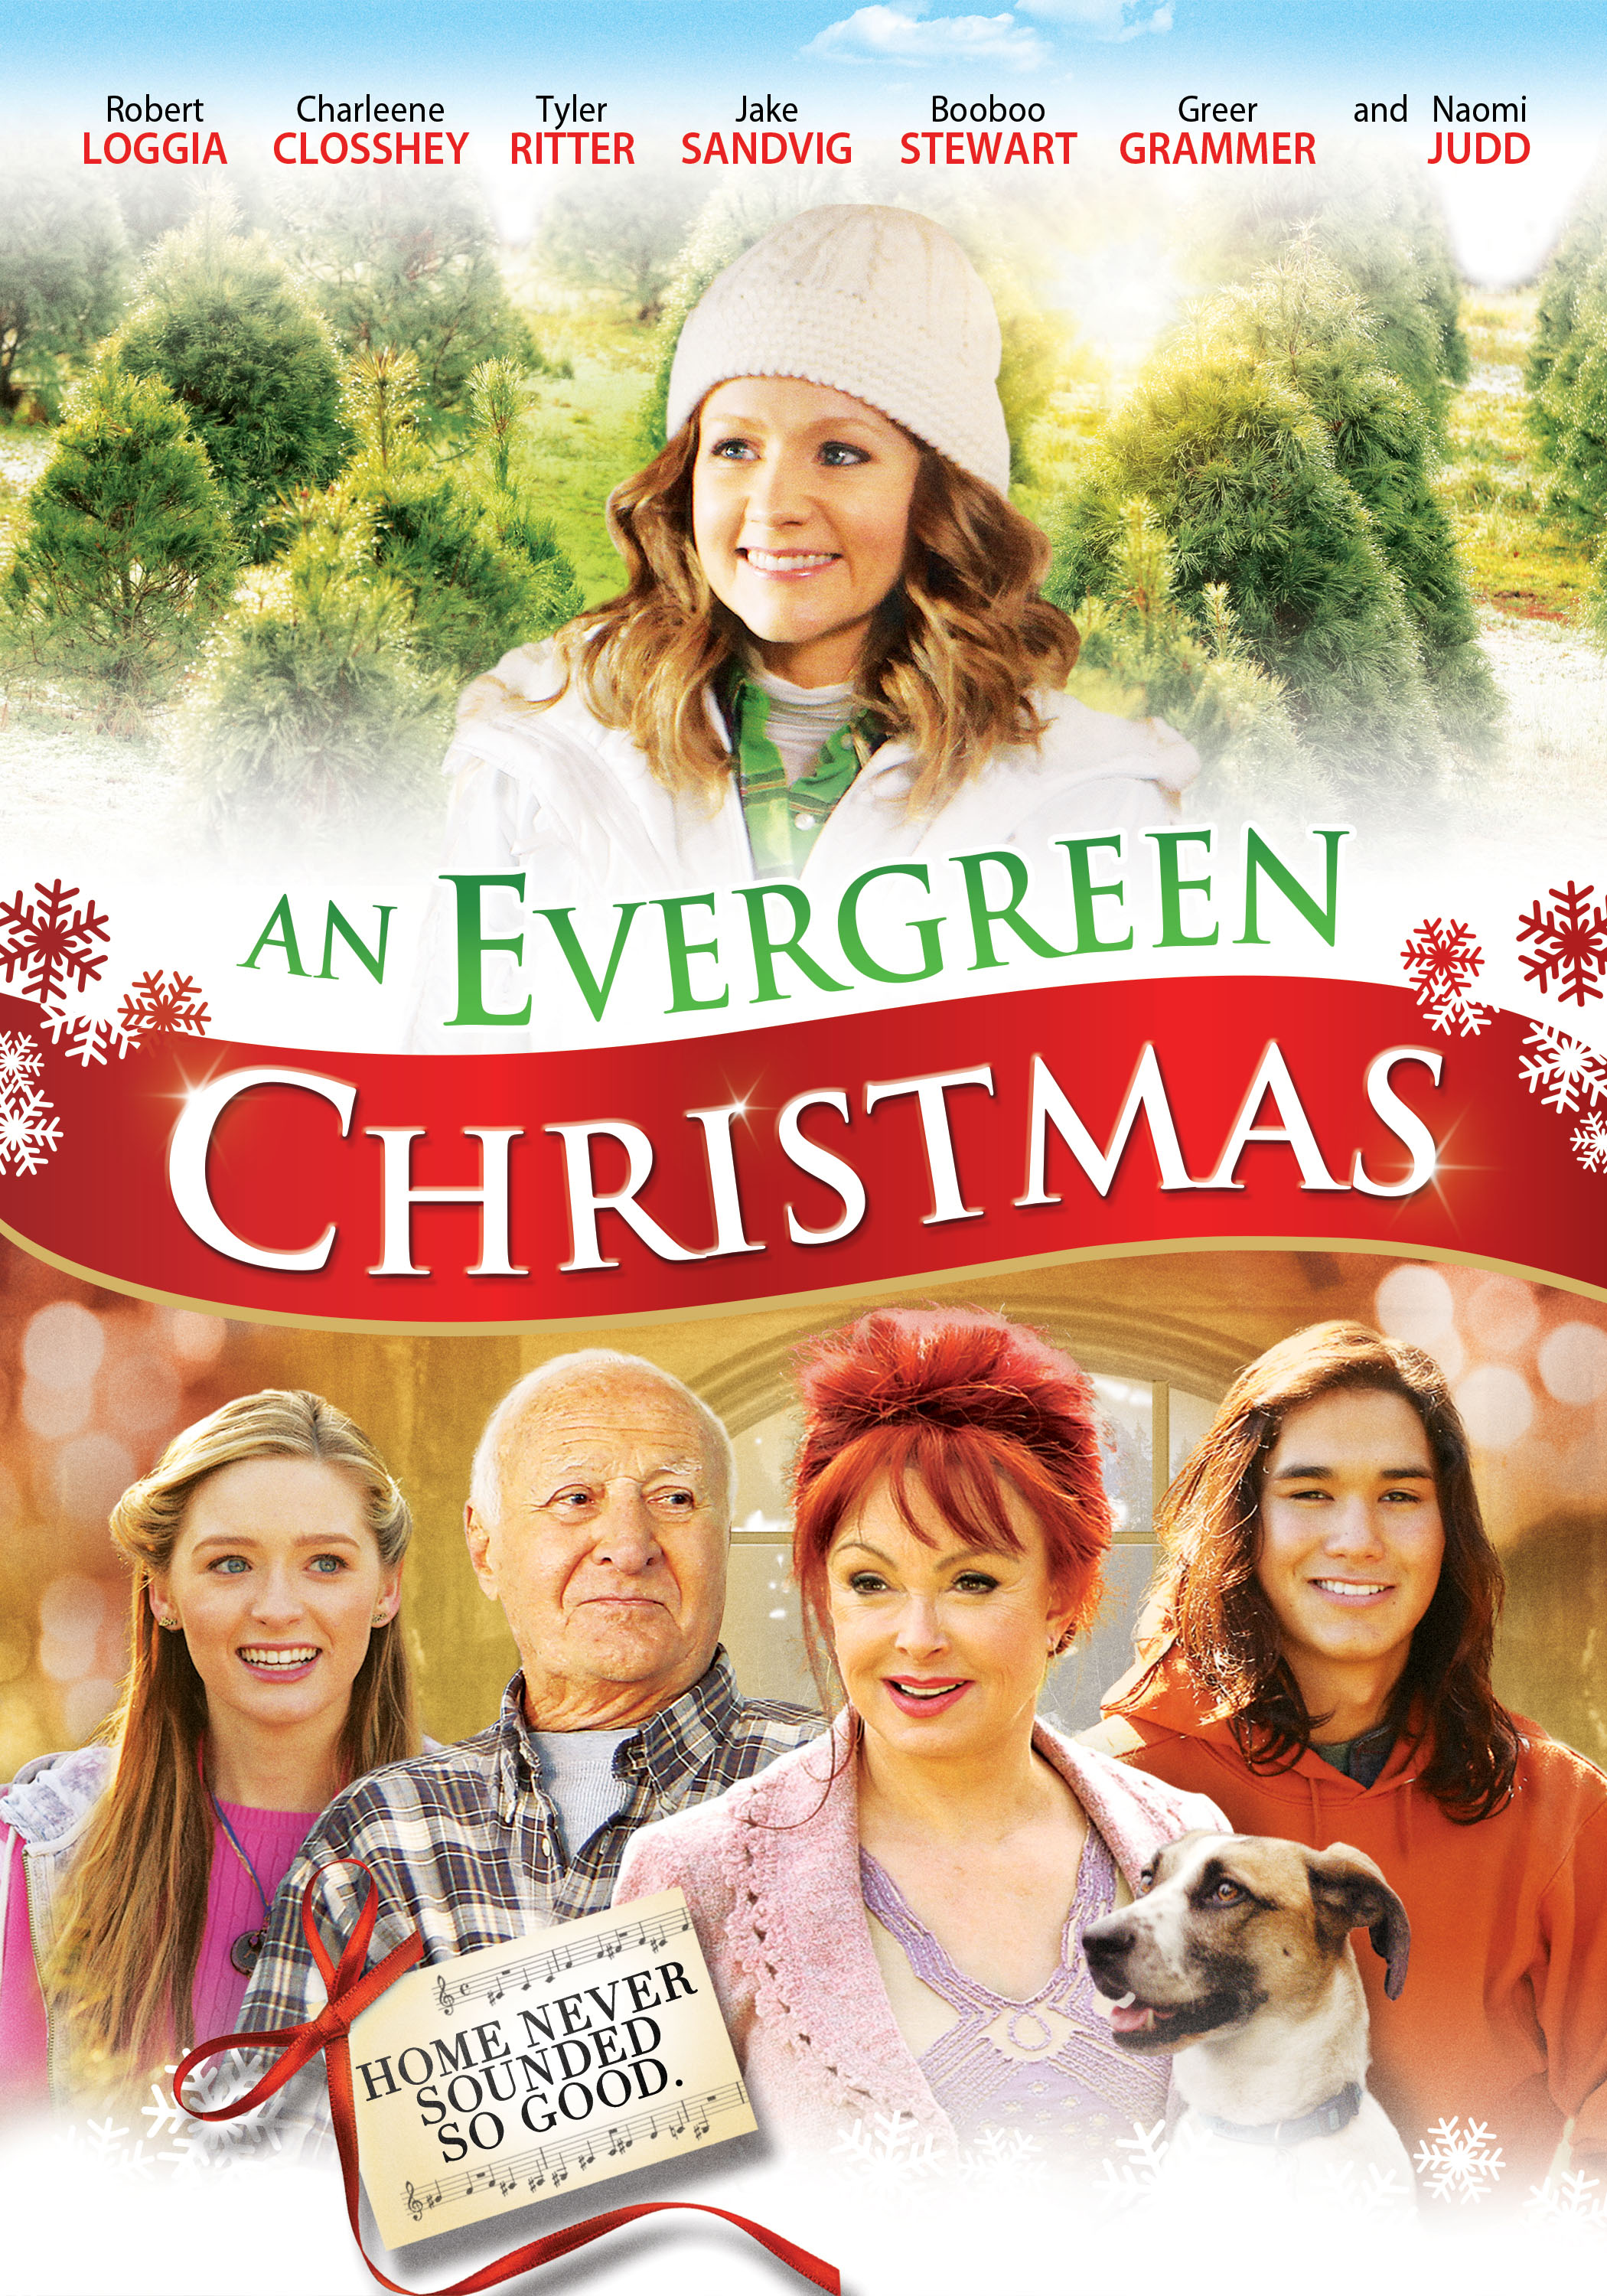 An Evergreen Christmas.An Evergreen Christmas 2014 Imdb